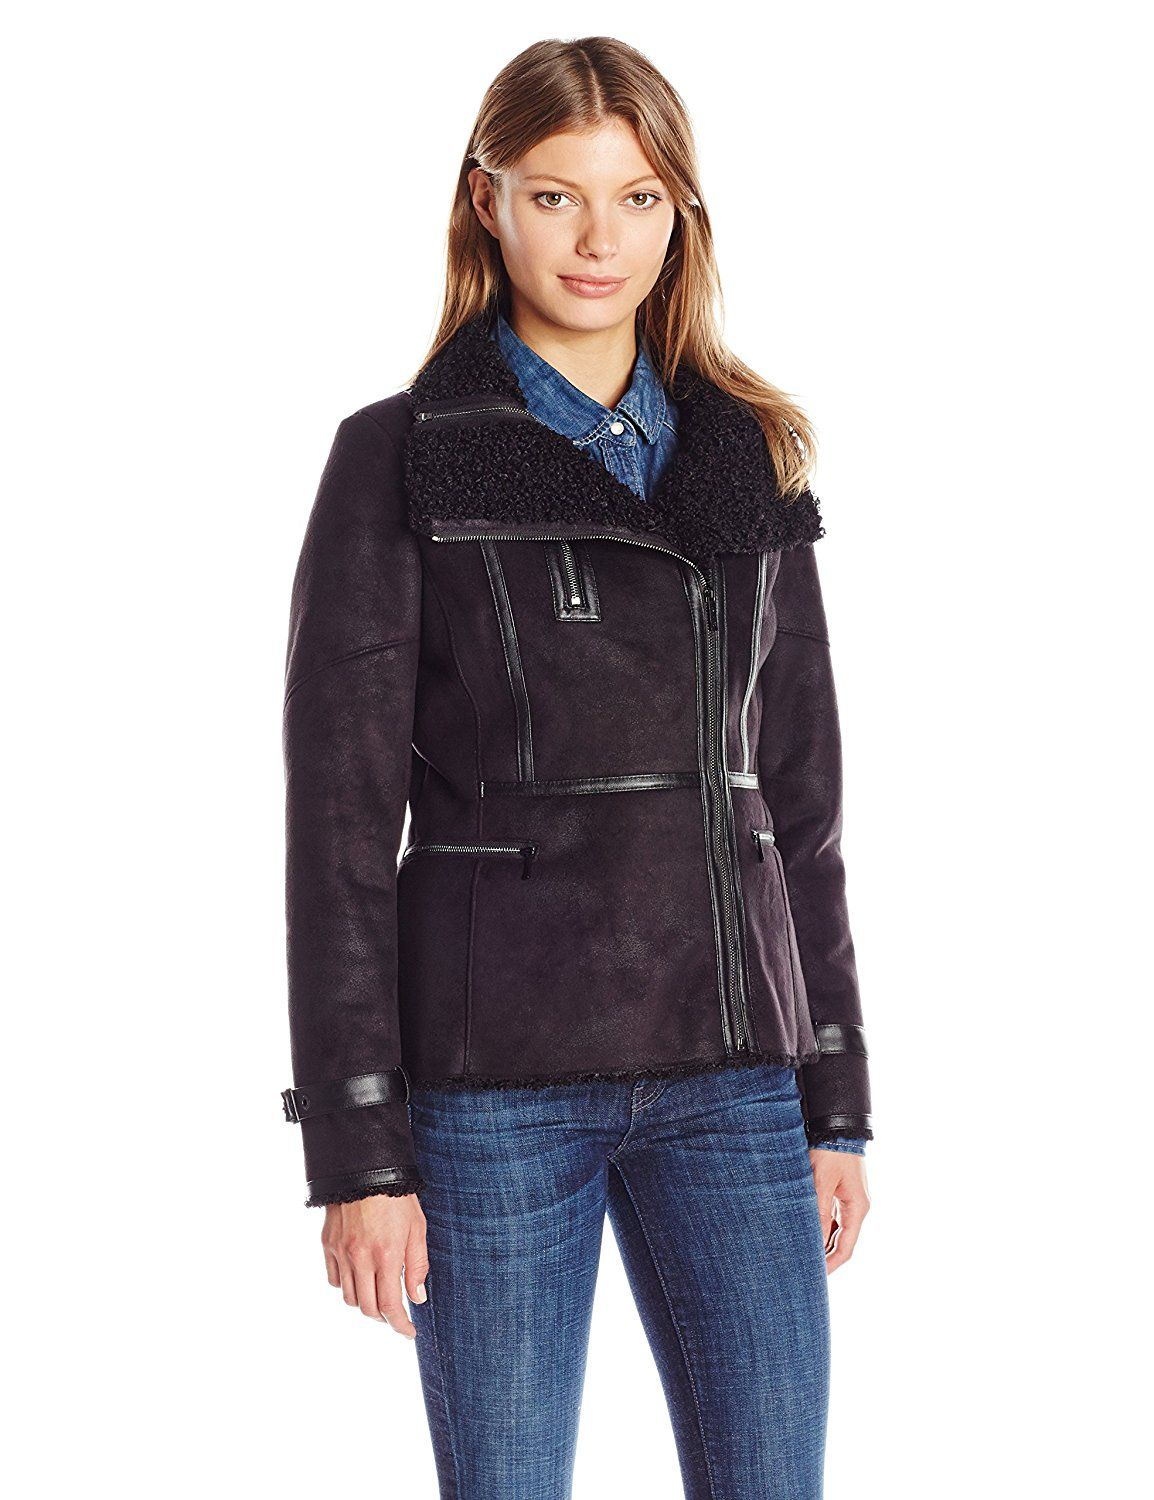 Calvin Klein Women's Shearling Jacket with Faux Leather at